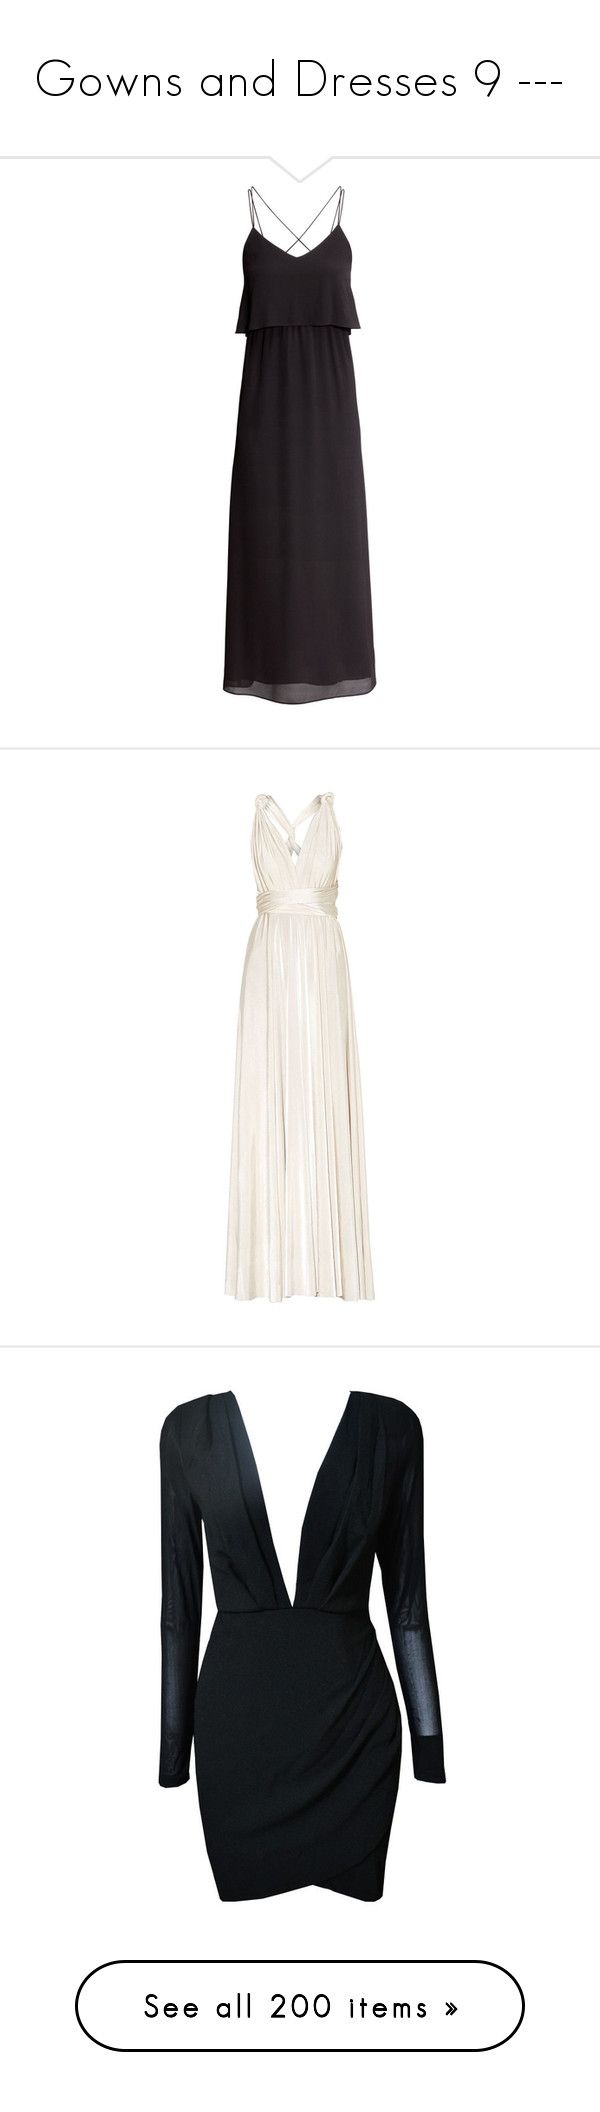 """""""Gowns and Dresses 9 ---"""" by argboo on Polyvore featuring dresses, maxi dress, vestidos, black, h&m dresses, double layer dress, maxi dresses, maxi length dresses, layered maxi dress and gowns"""